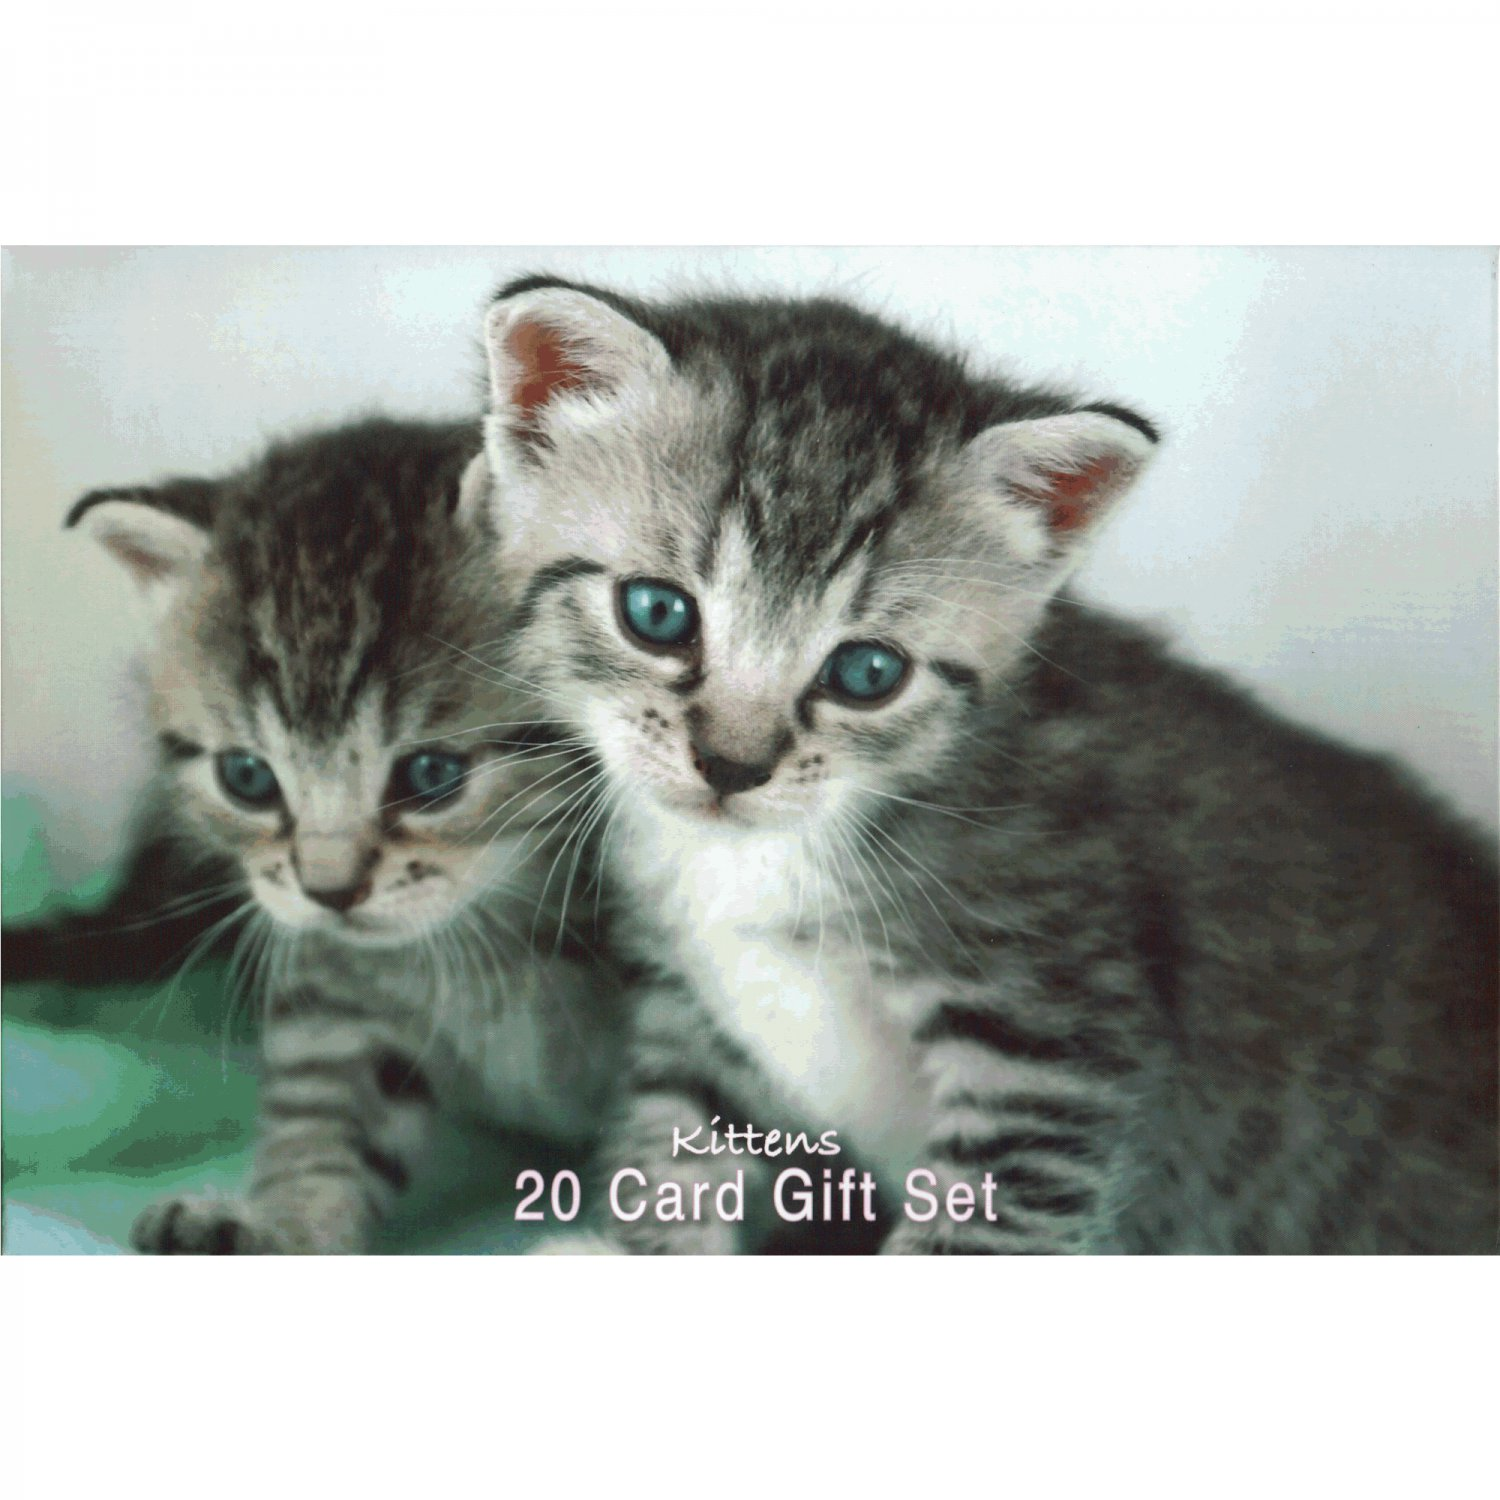 Very Cute Kittens with Big Blue Eyes - Notecards and Envelopes Set of 20